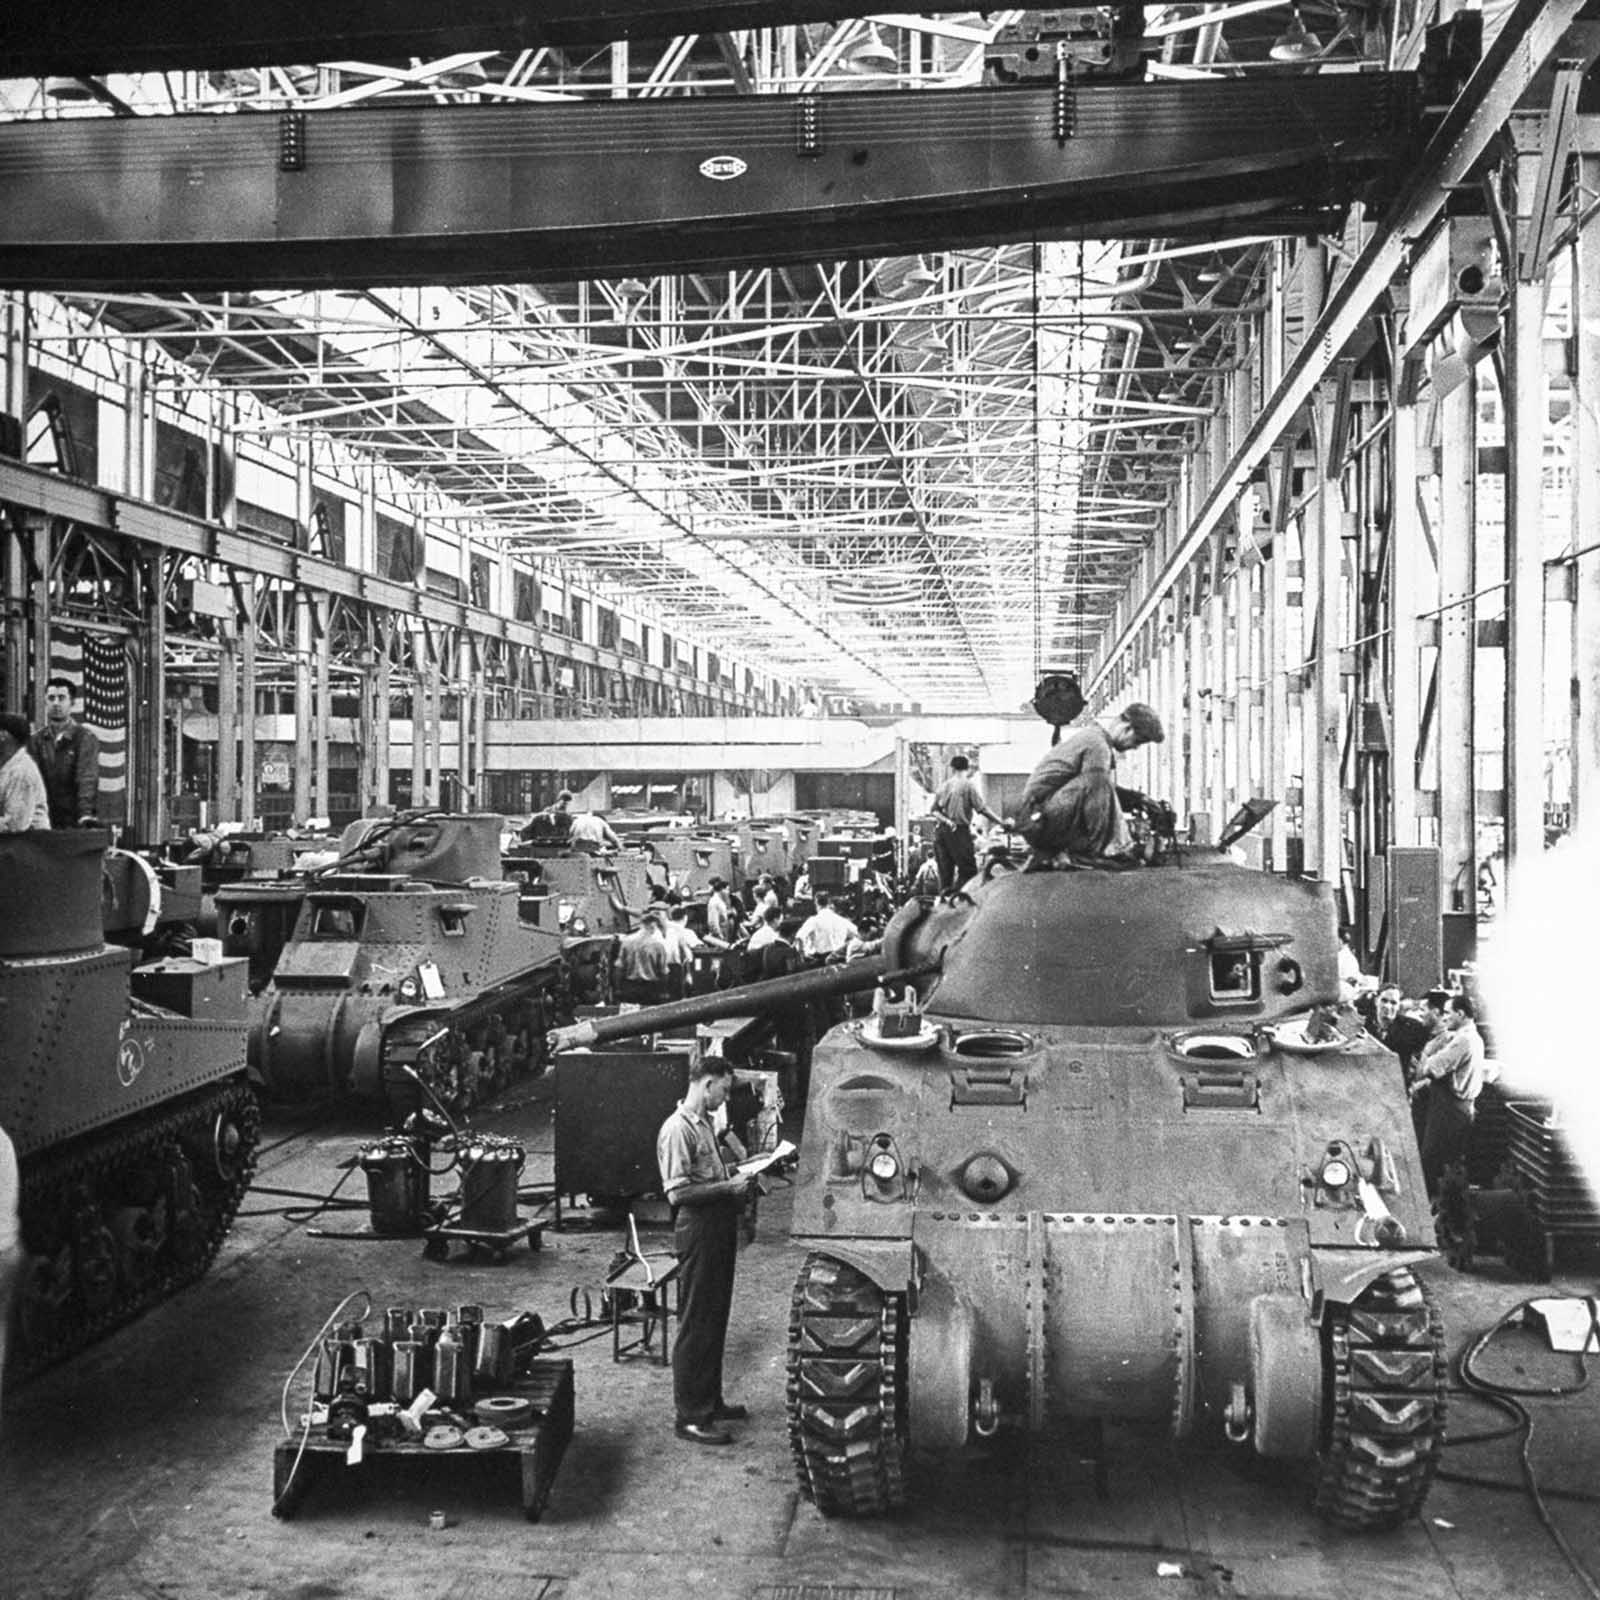 The assembly line at the Chrysler tank arsenal in Michigan changes over from M3 to M4 models while the line continues moving. 1942.